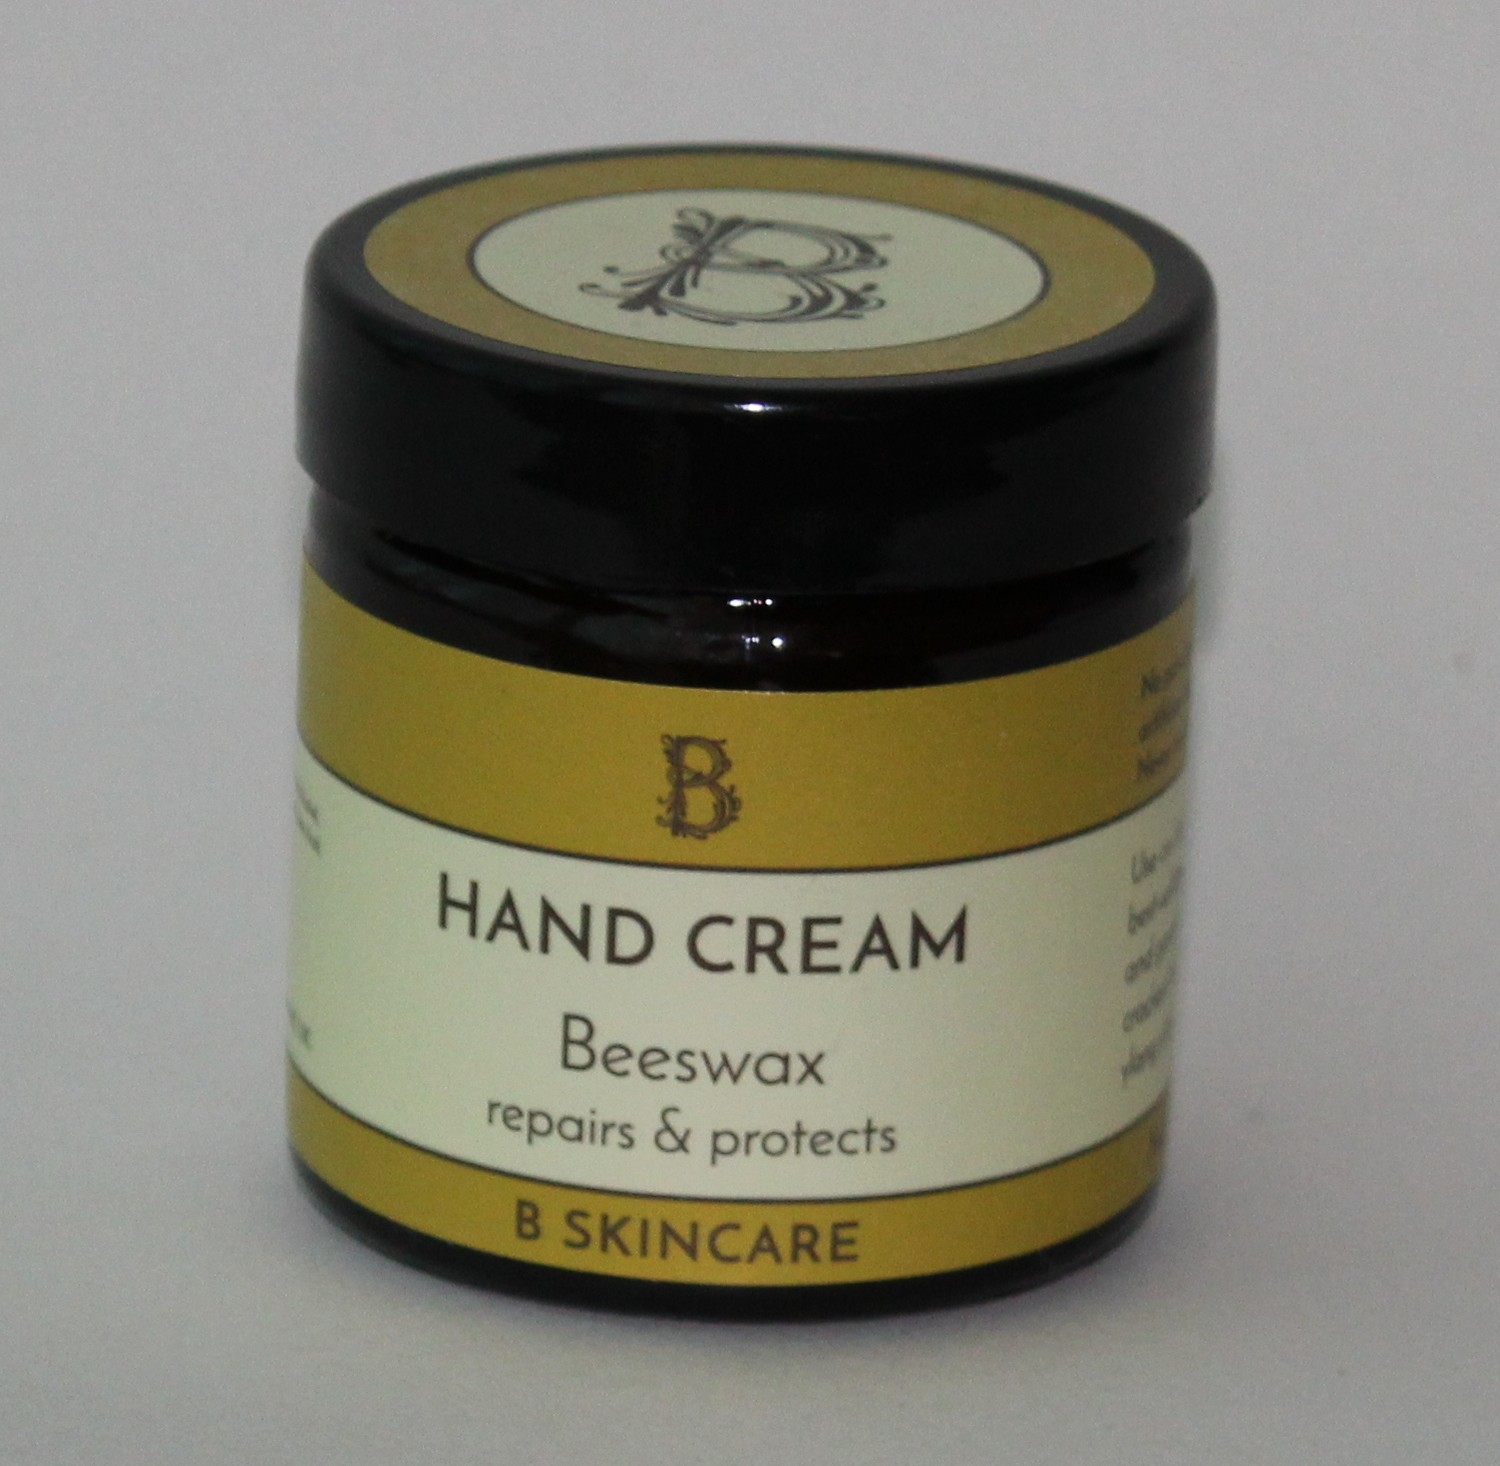 B Skincare Beeswax hand and foot cream